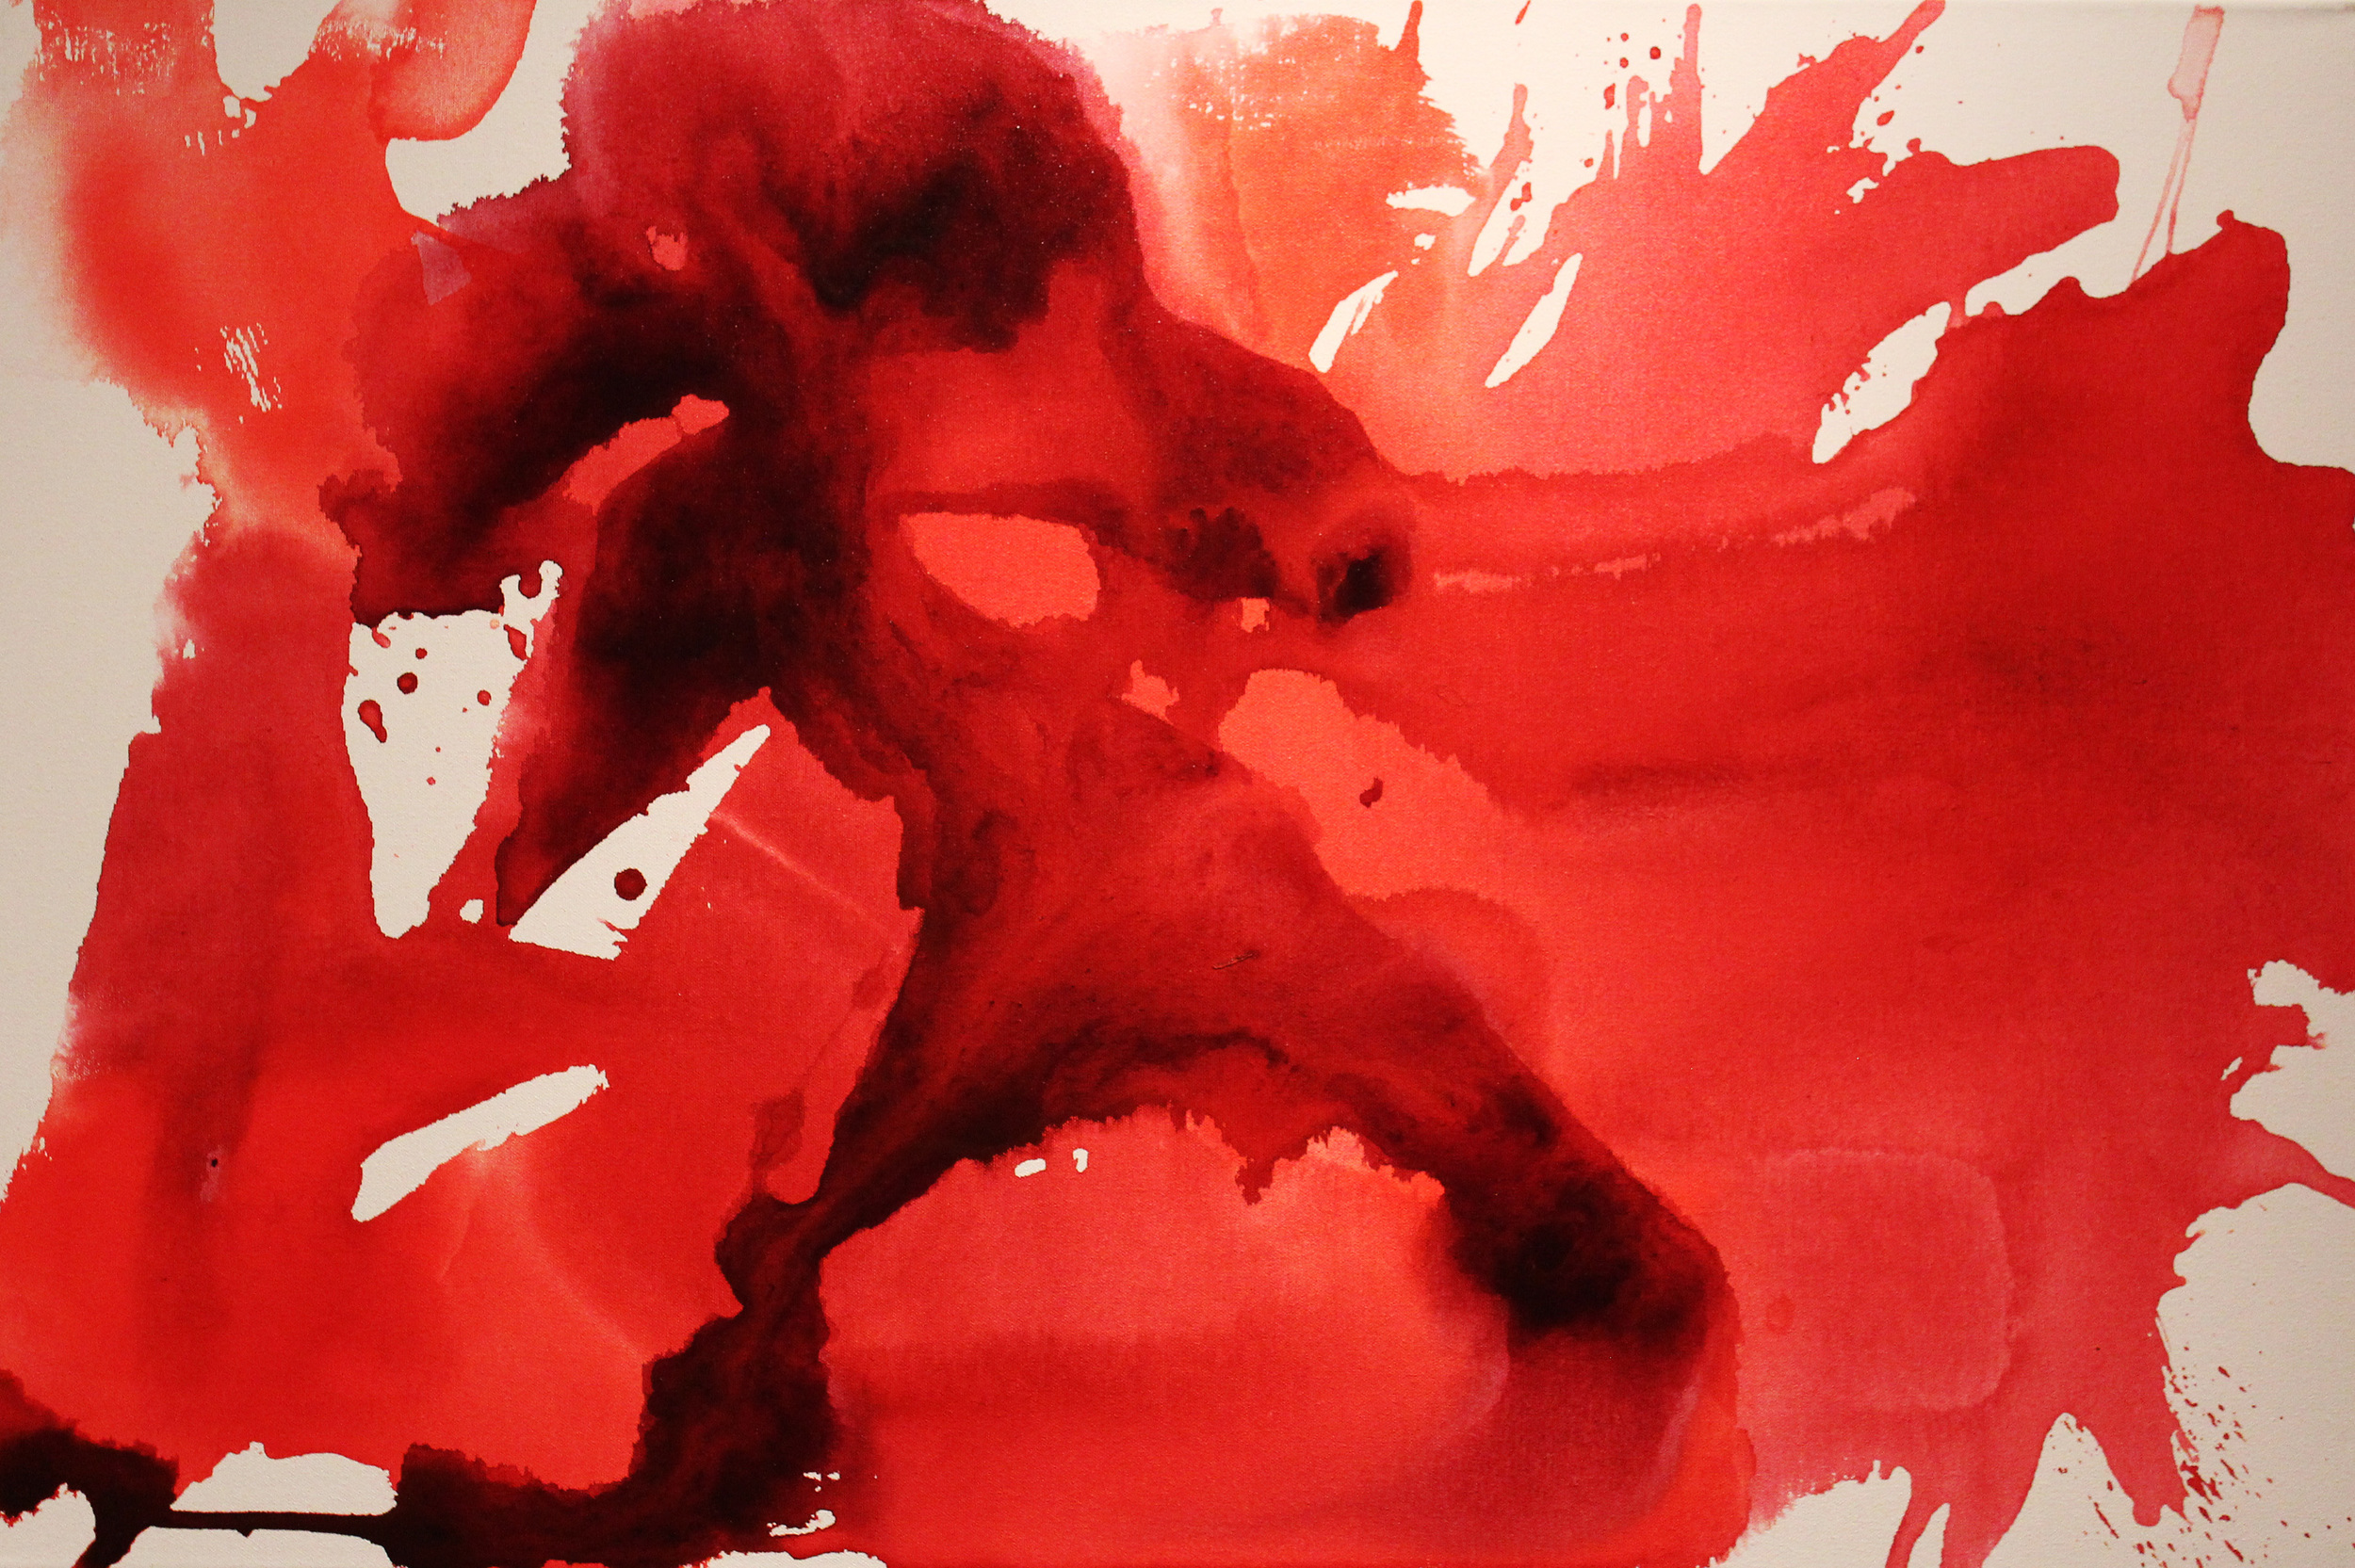 Untitled Red Series #5